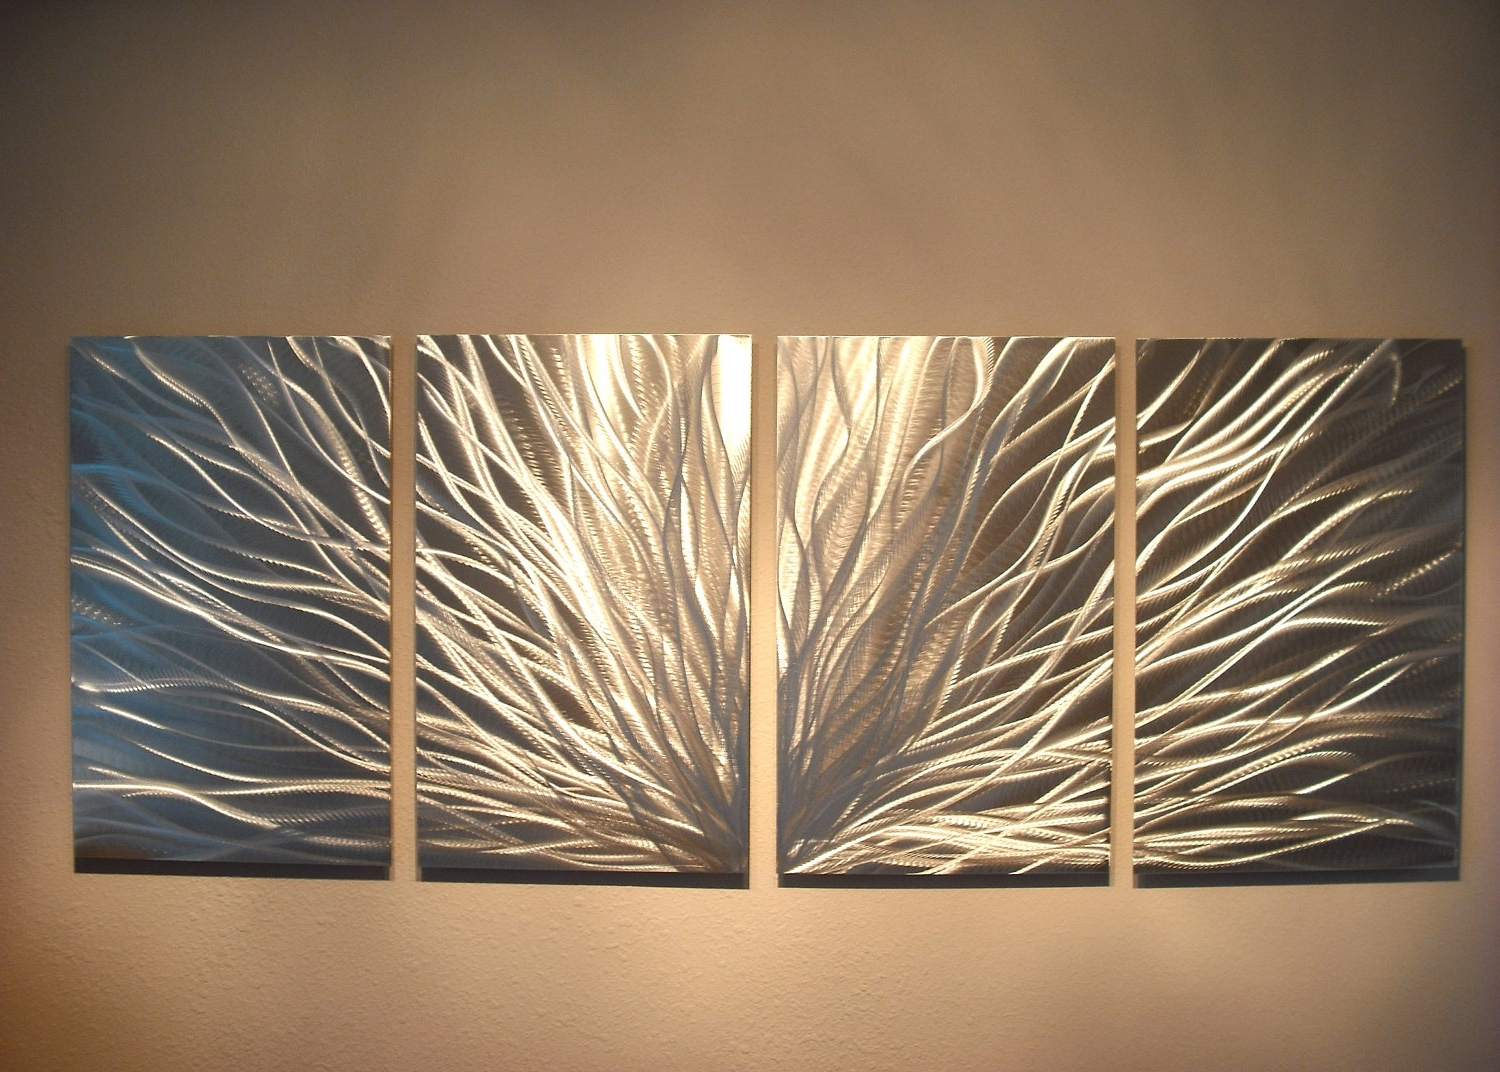 Trendy Contemporary Metal Wall Art Sculpture With Regard To Radiance – Abstract Metal Wall Art Contemporary Modern Decor (View 9 of 15)